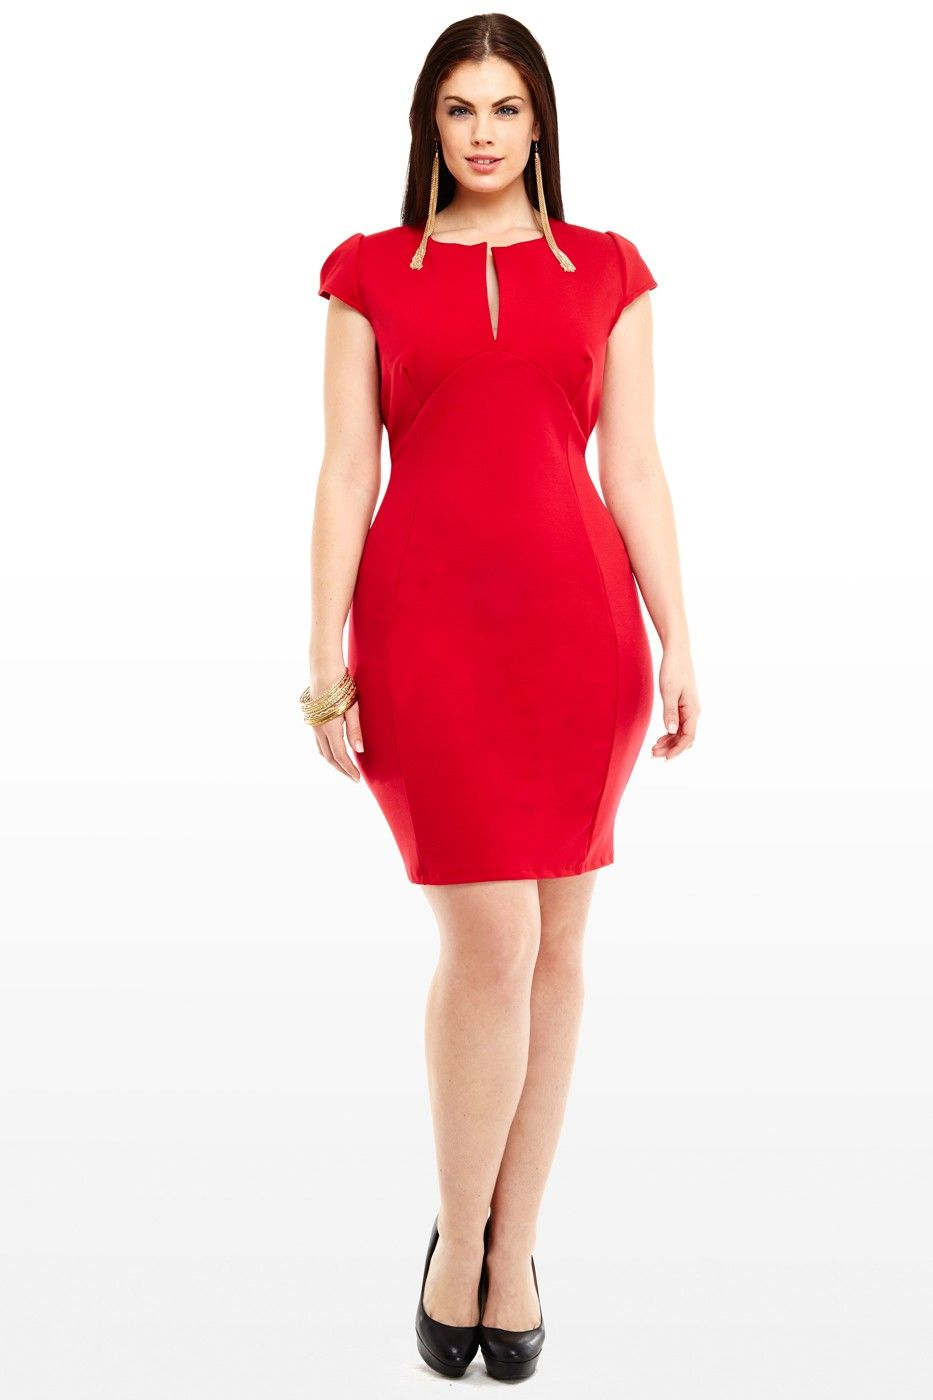 3bec259a3c965 ... Sexy Night Out Dresses. Plus Size Clothing New Arrivals. Chloe Marshall.  5 10